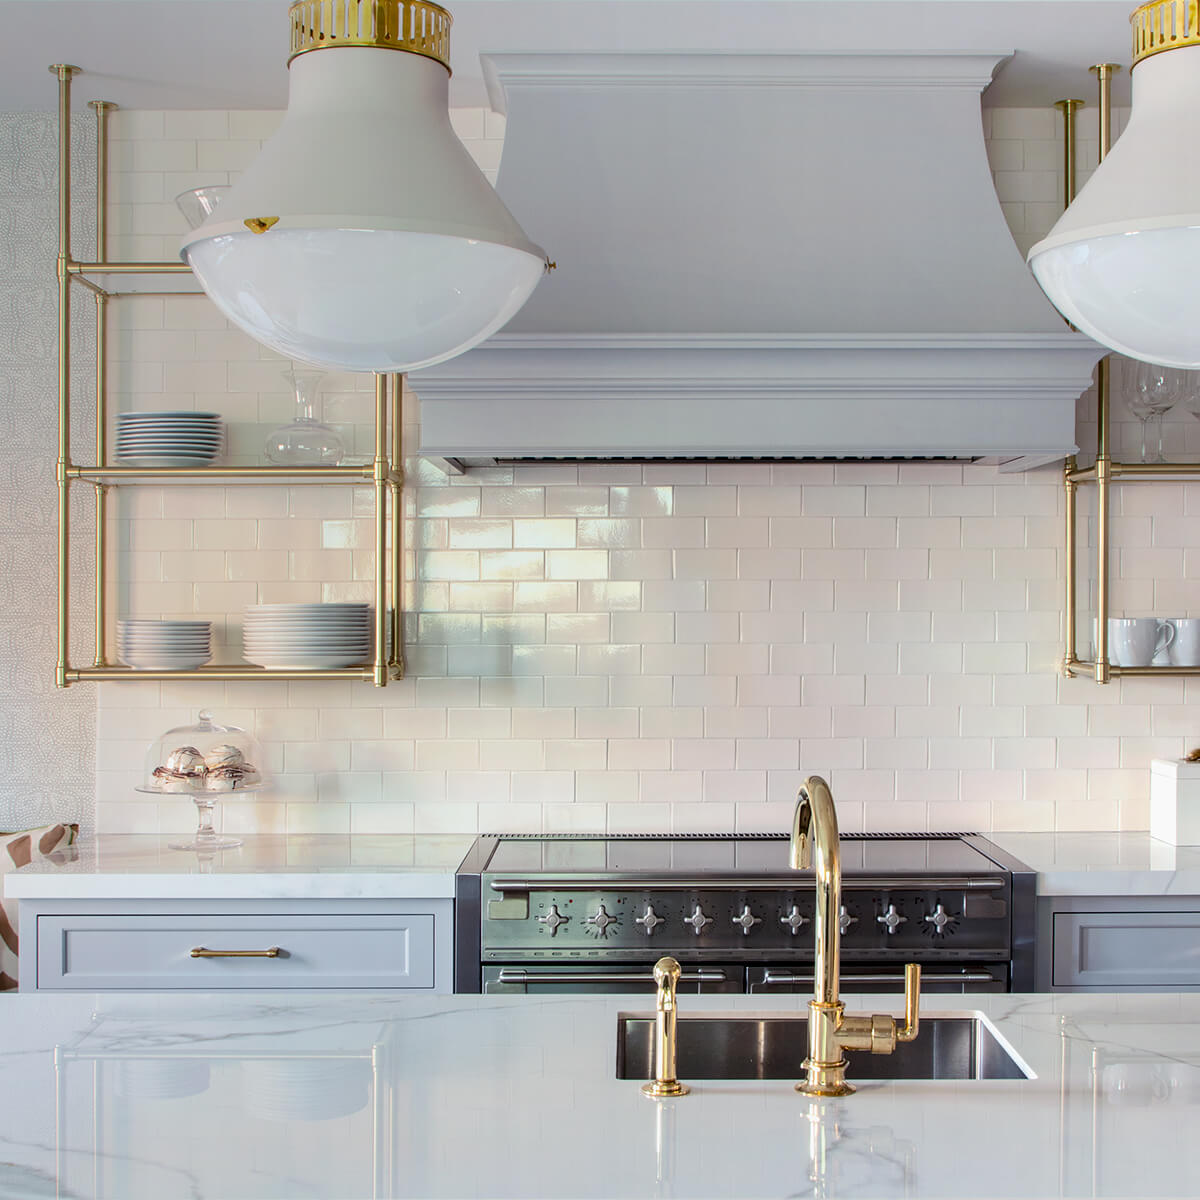 1276-HoneyCollins-Kitchen-1200